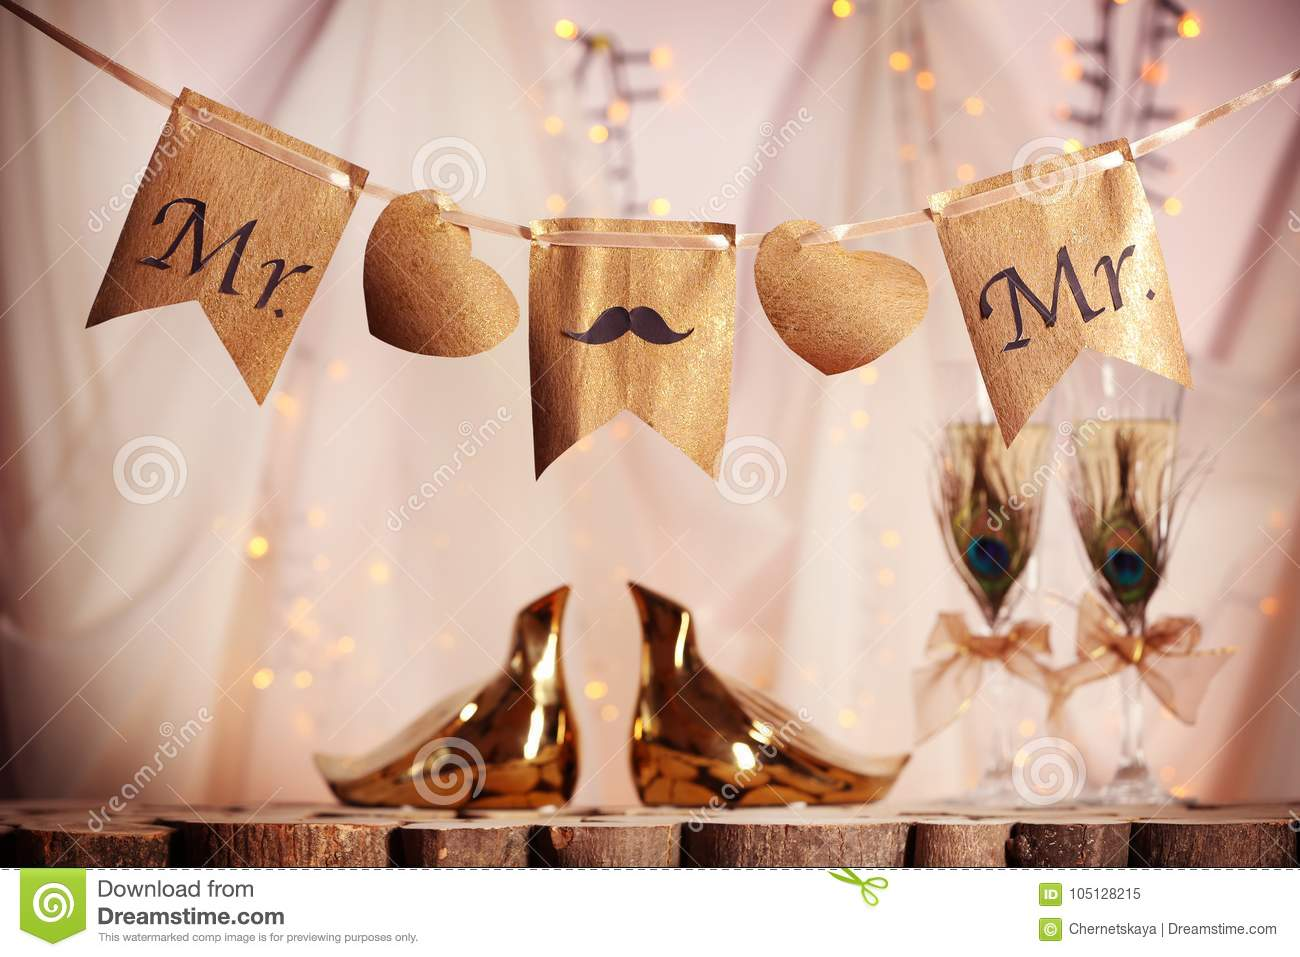 Decorations for gay wedding